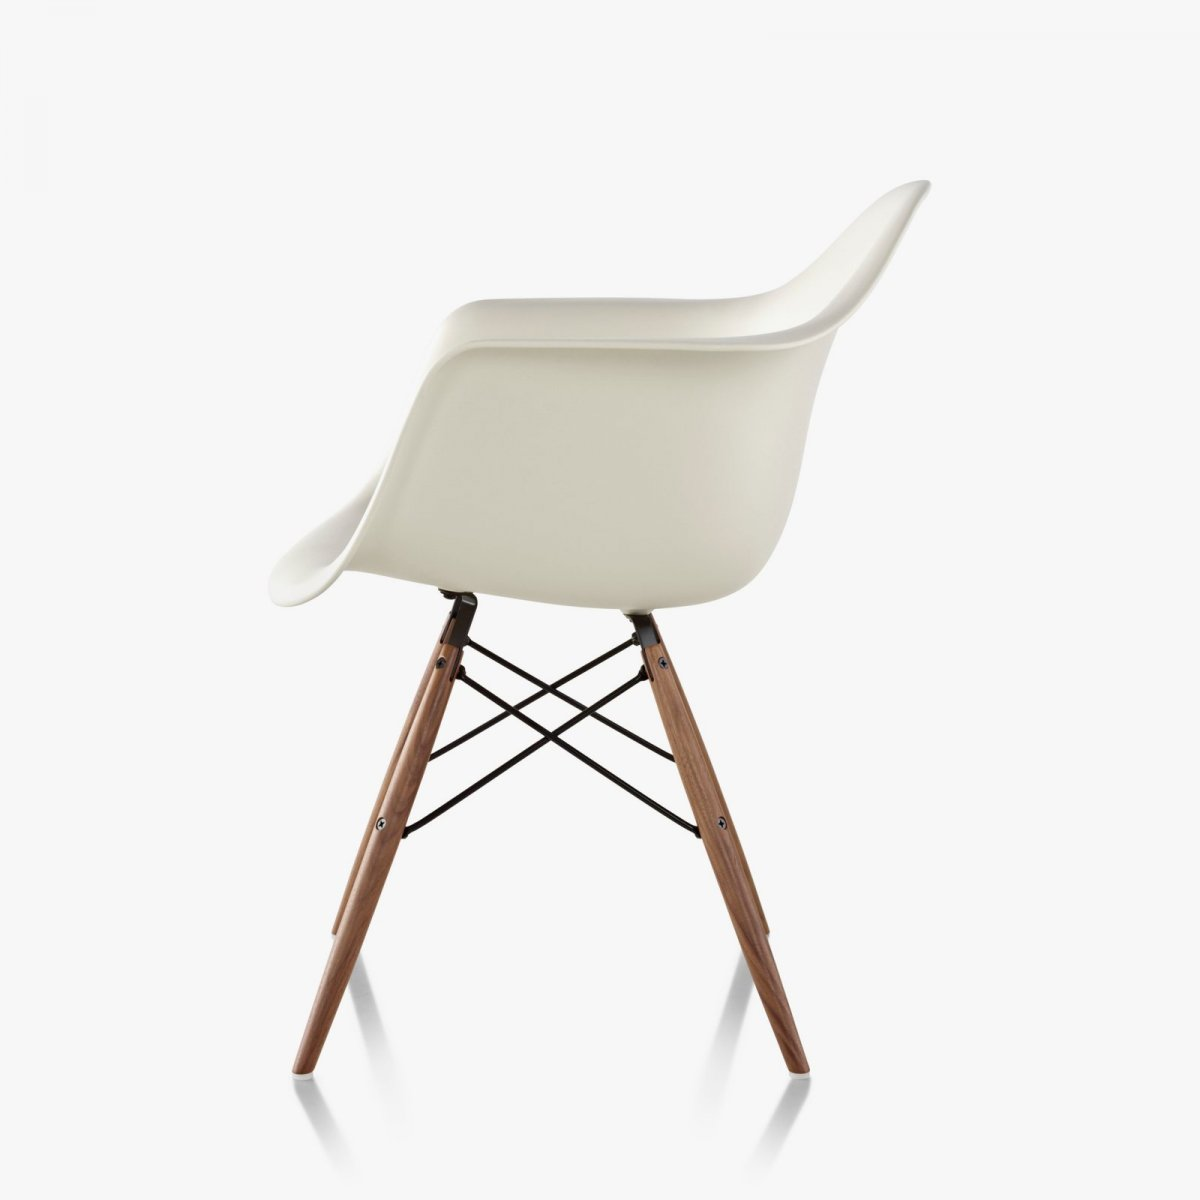 Eames Molded Plastic Armchair Dowel Base, white, side view.